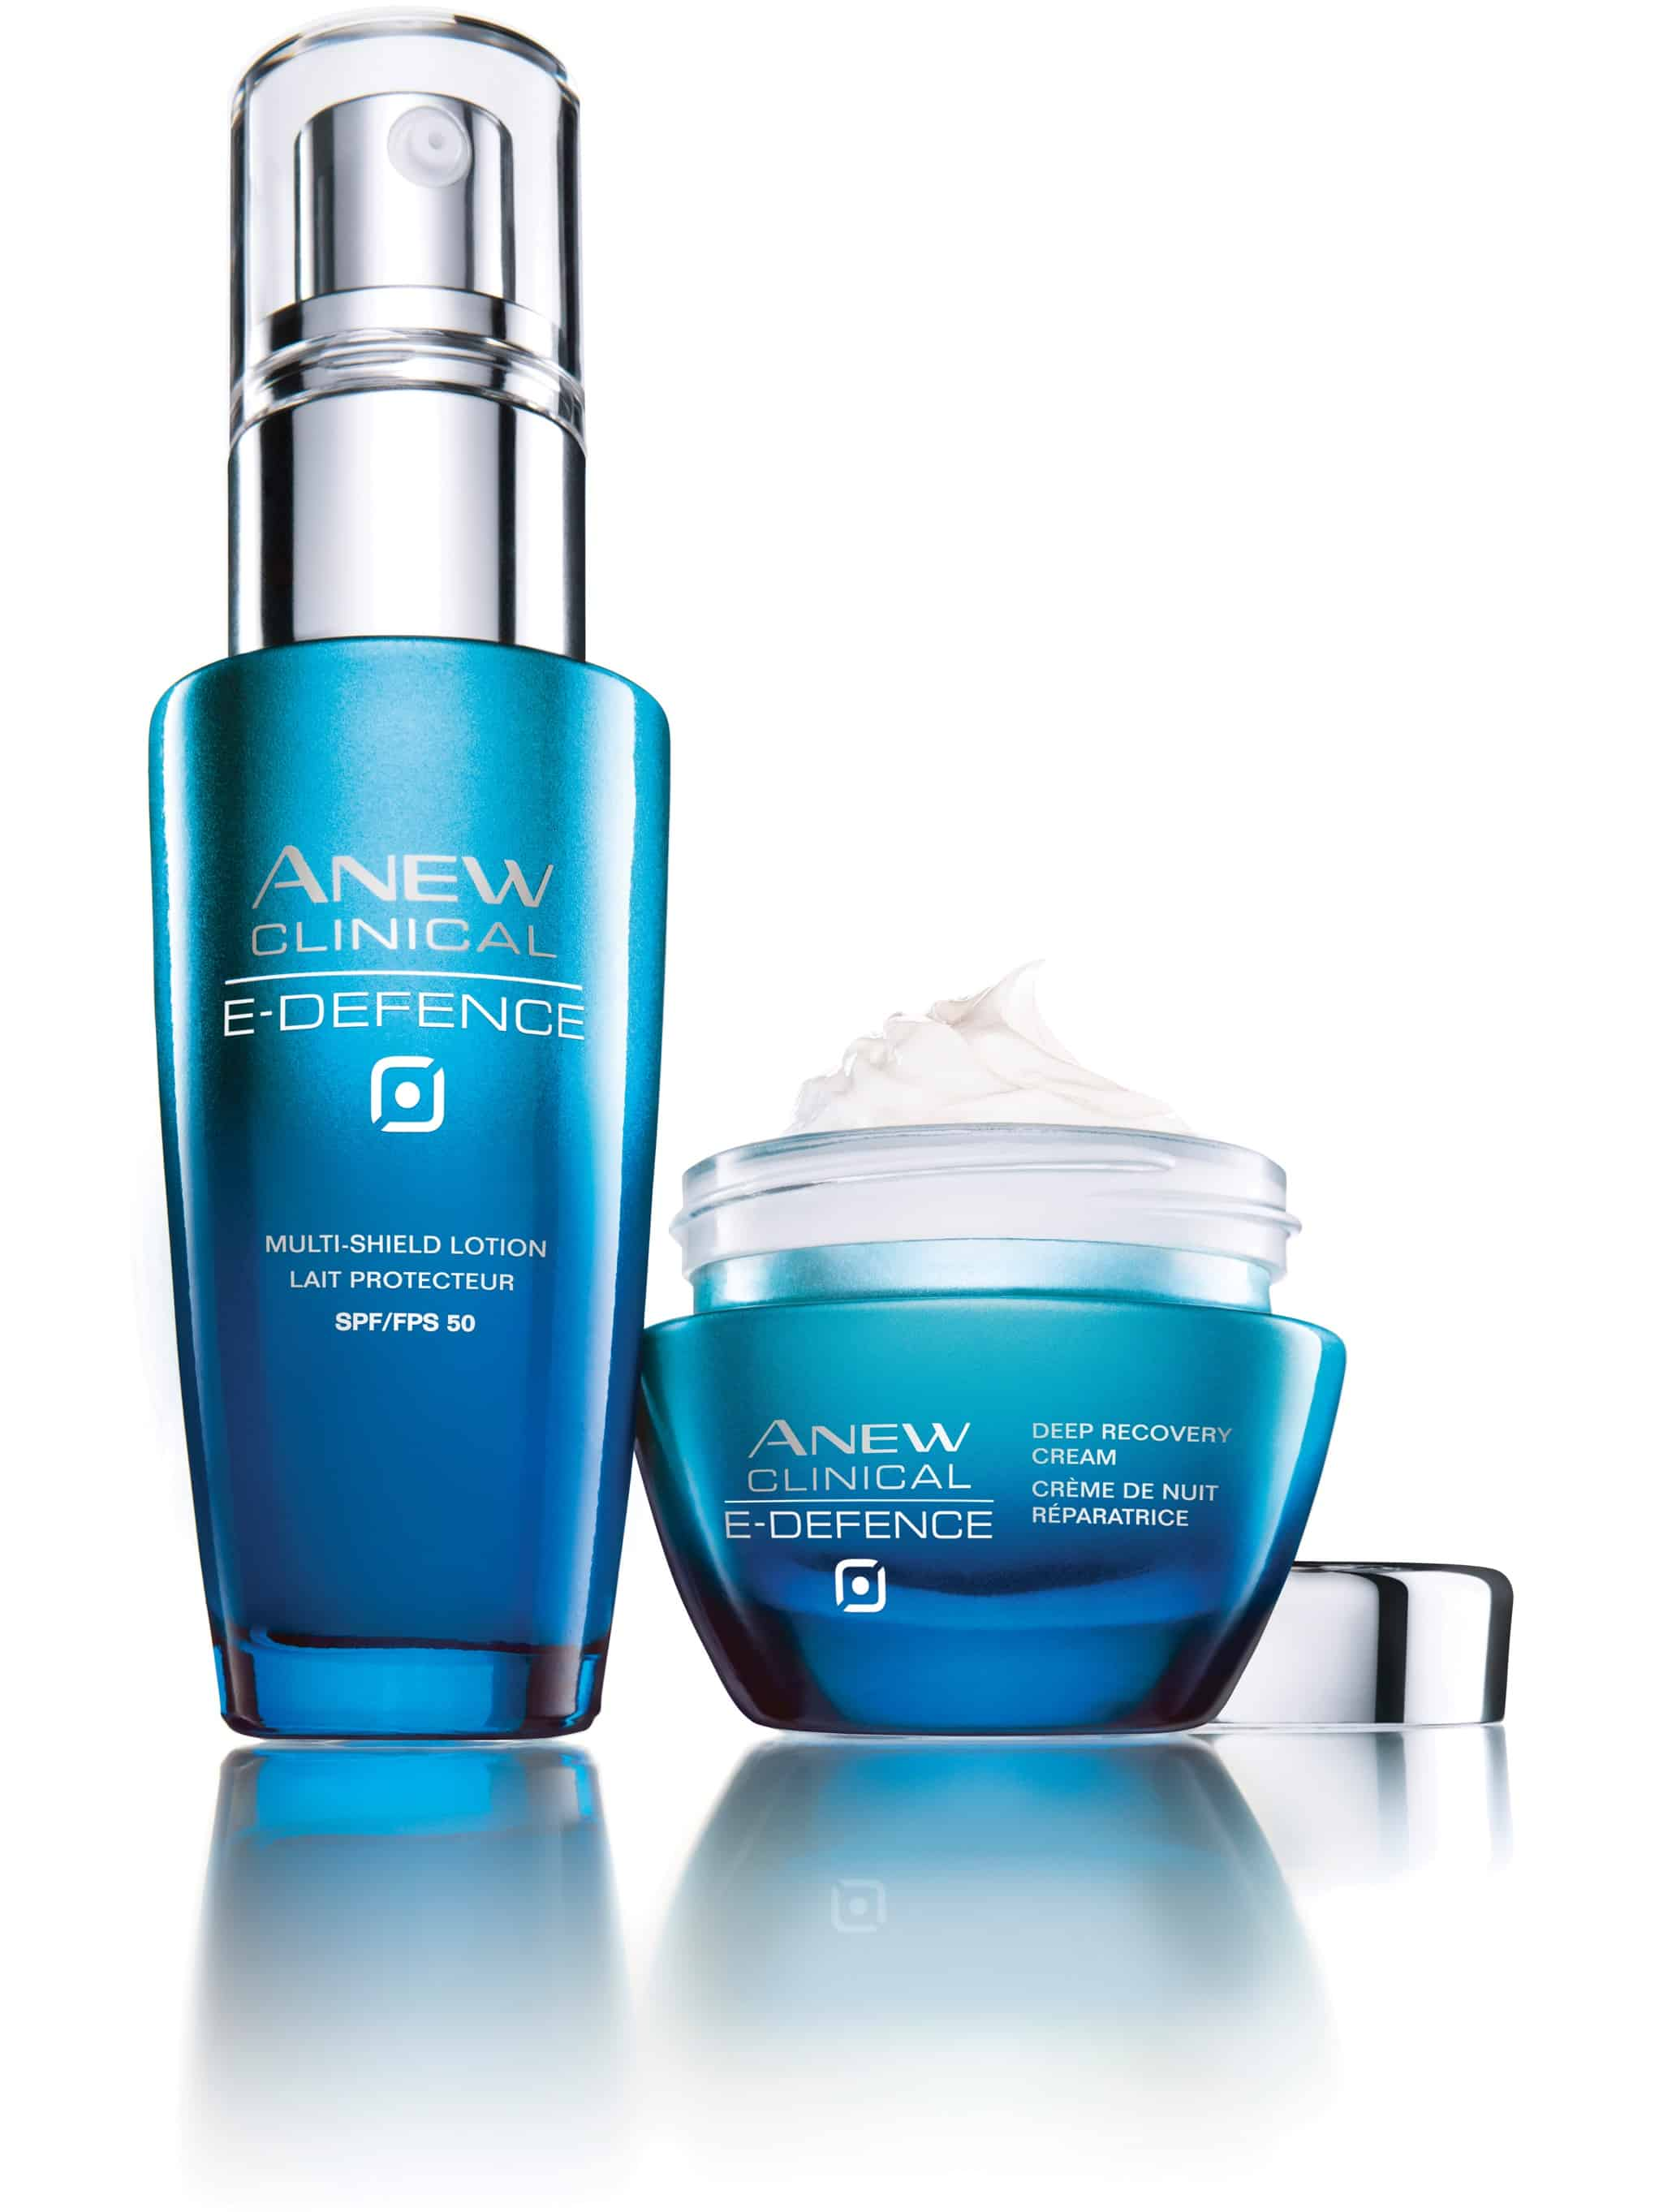 Avon ANEW Clinical E-Defence aiuta a ripare i danni cutanei dovuti all'ambiente